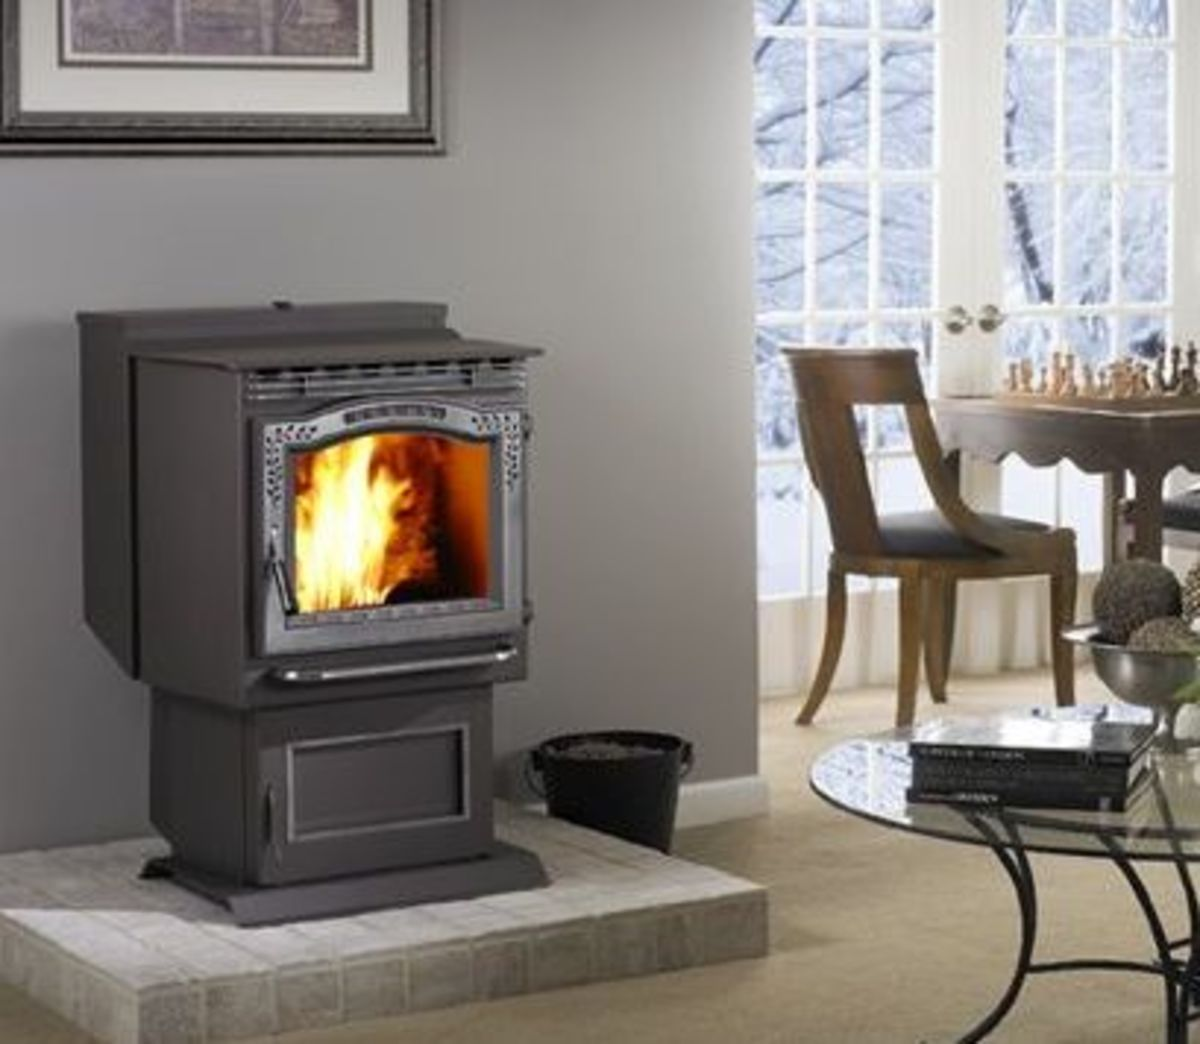 Before You Buy a Wood Stove or Pellet Stove | Dengarden